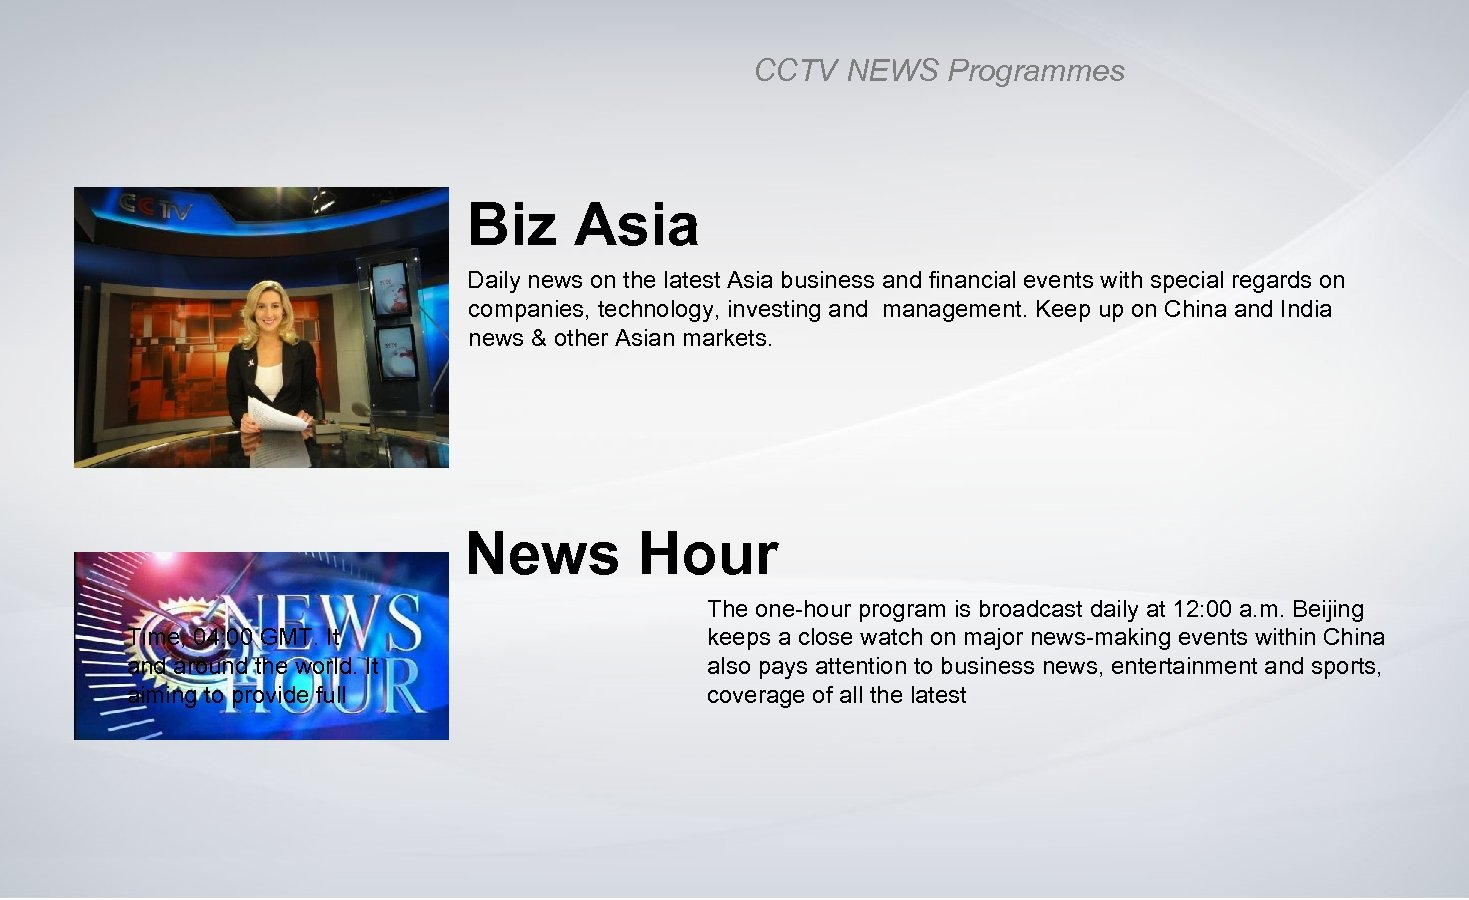 CCTV NEWS Programmes Biz Asia Daily news on the latest Asia business and financial